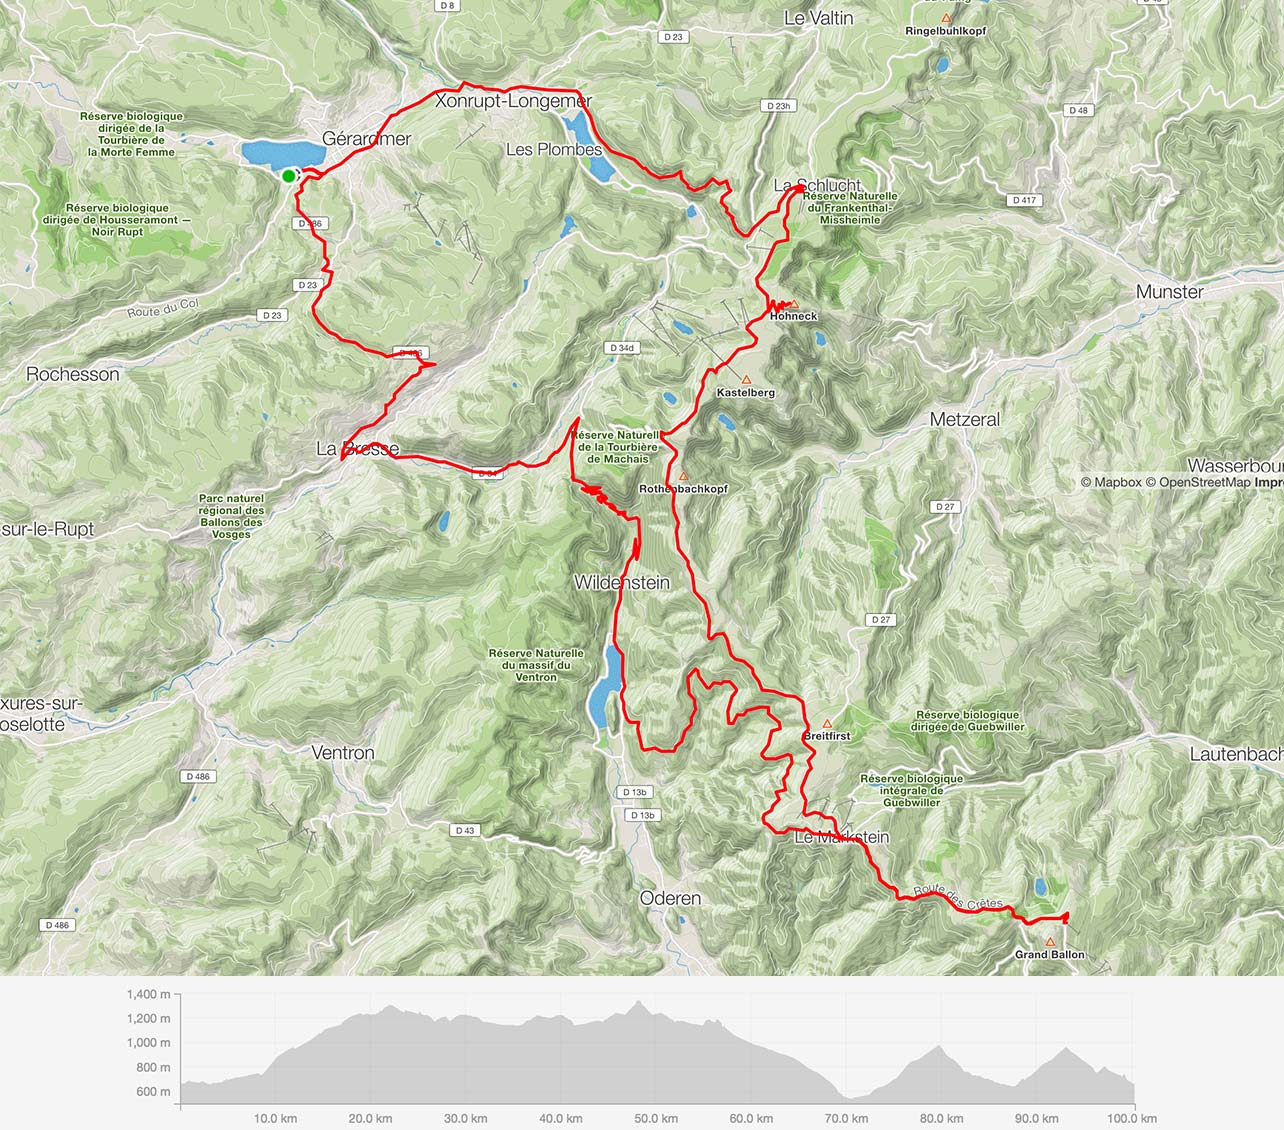 Tour 5 – Vosges – Cool ride through the clouds